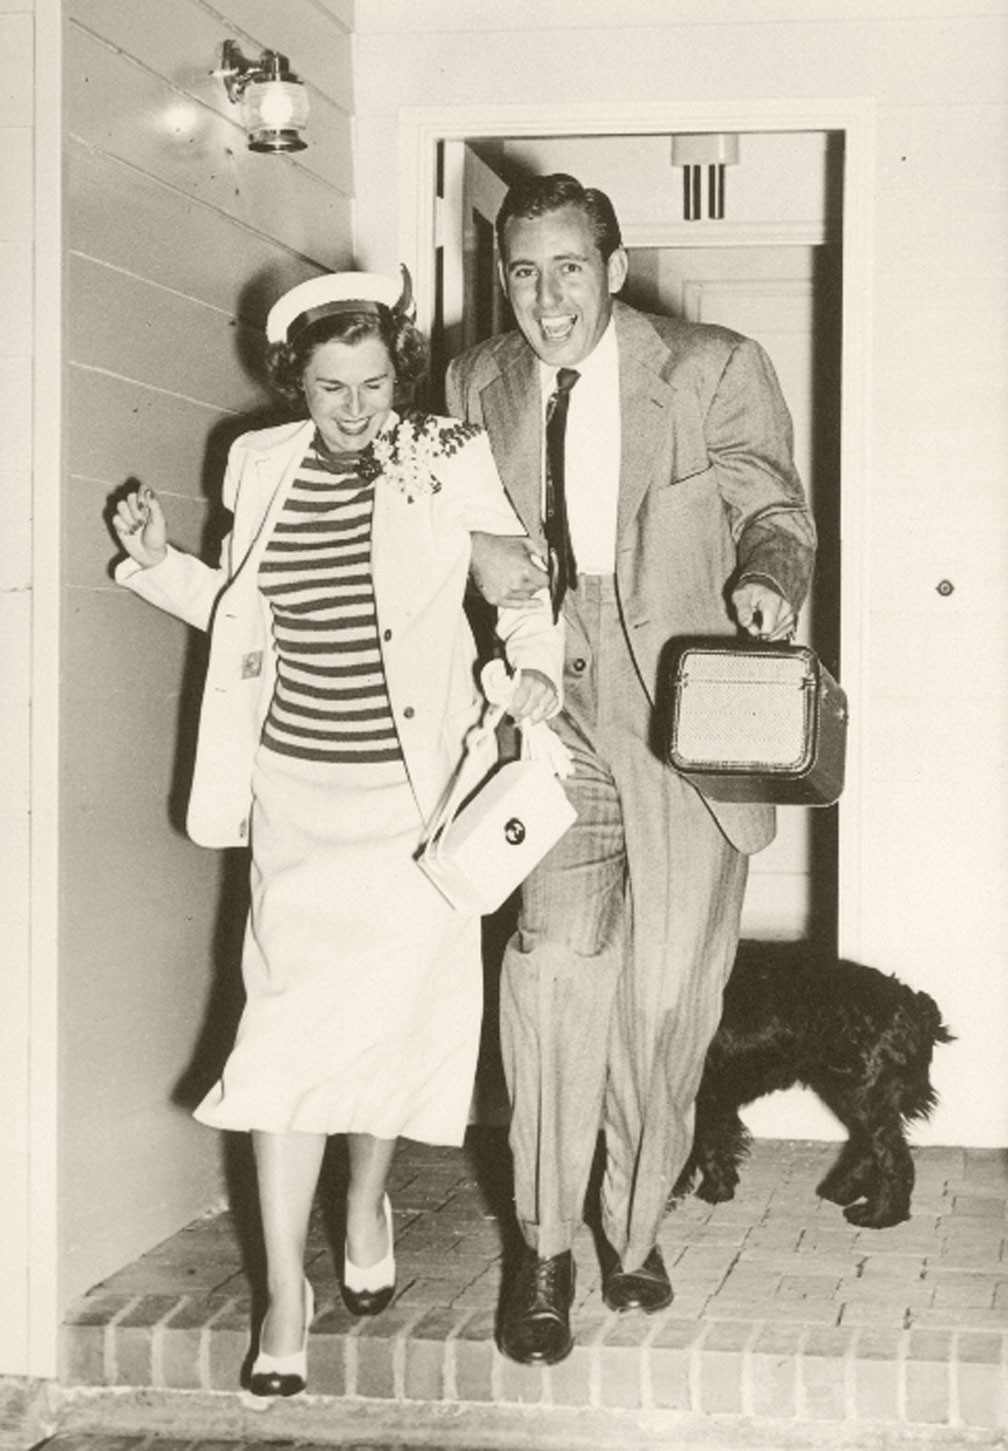 Ned and Margie Smith